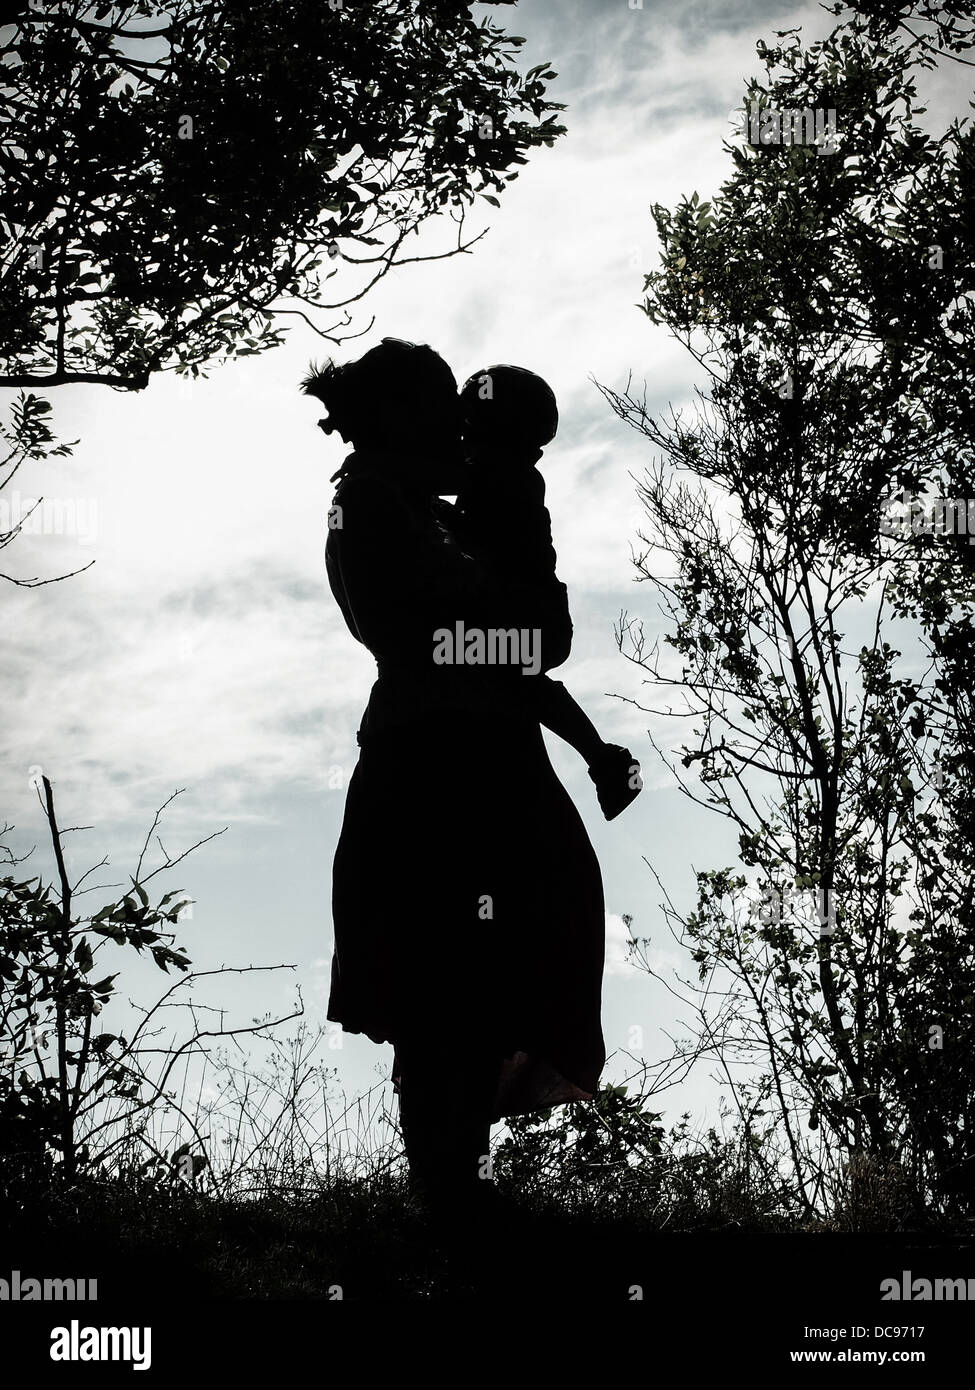 A silhouette of a mother holding a young boy wearing a cycle helmet framed by trees and branches Stock Photo